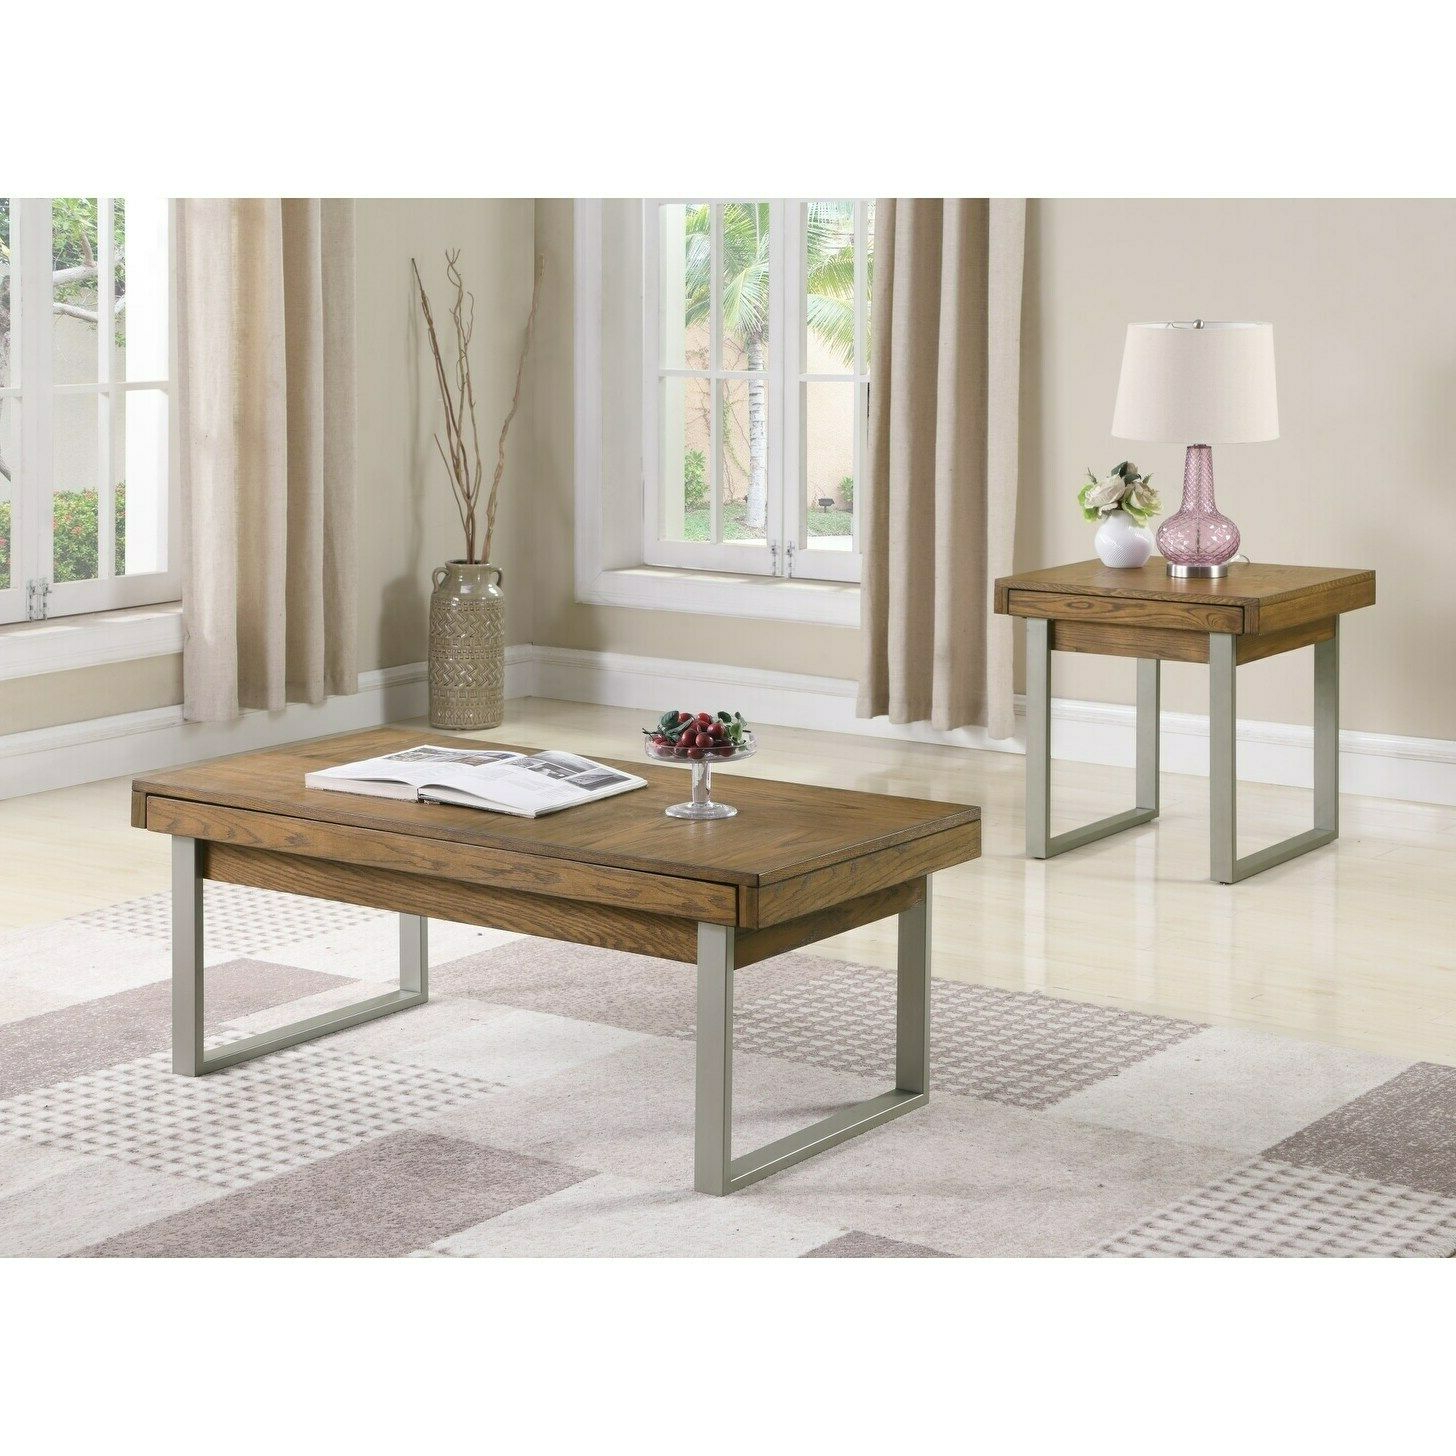 Strick & Bolton Kramer Golden Oak Coffee Table Brown Pertaining To Well Liked Strick & Bolton Sylvia Geometric High Gloss Coffee Tables (View 16 of 20)